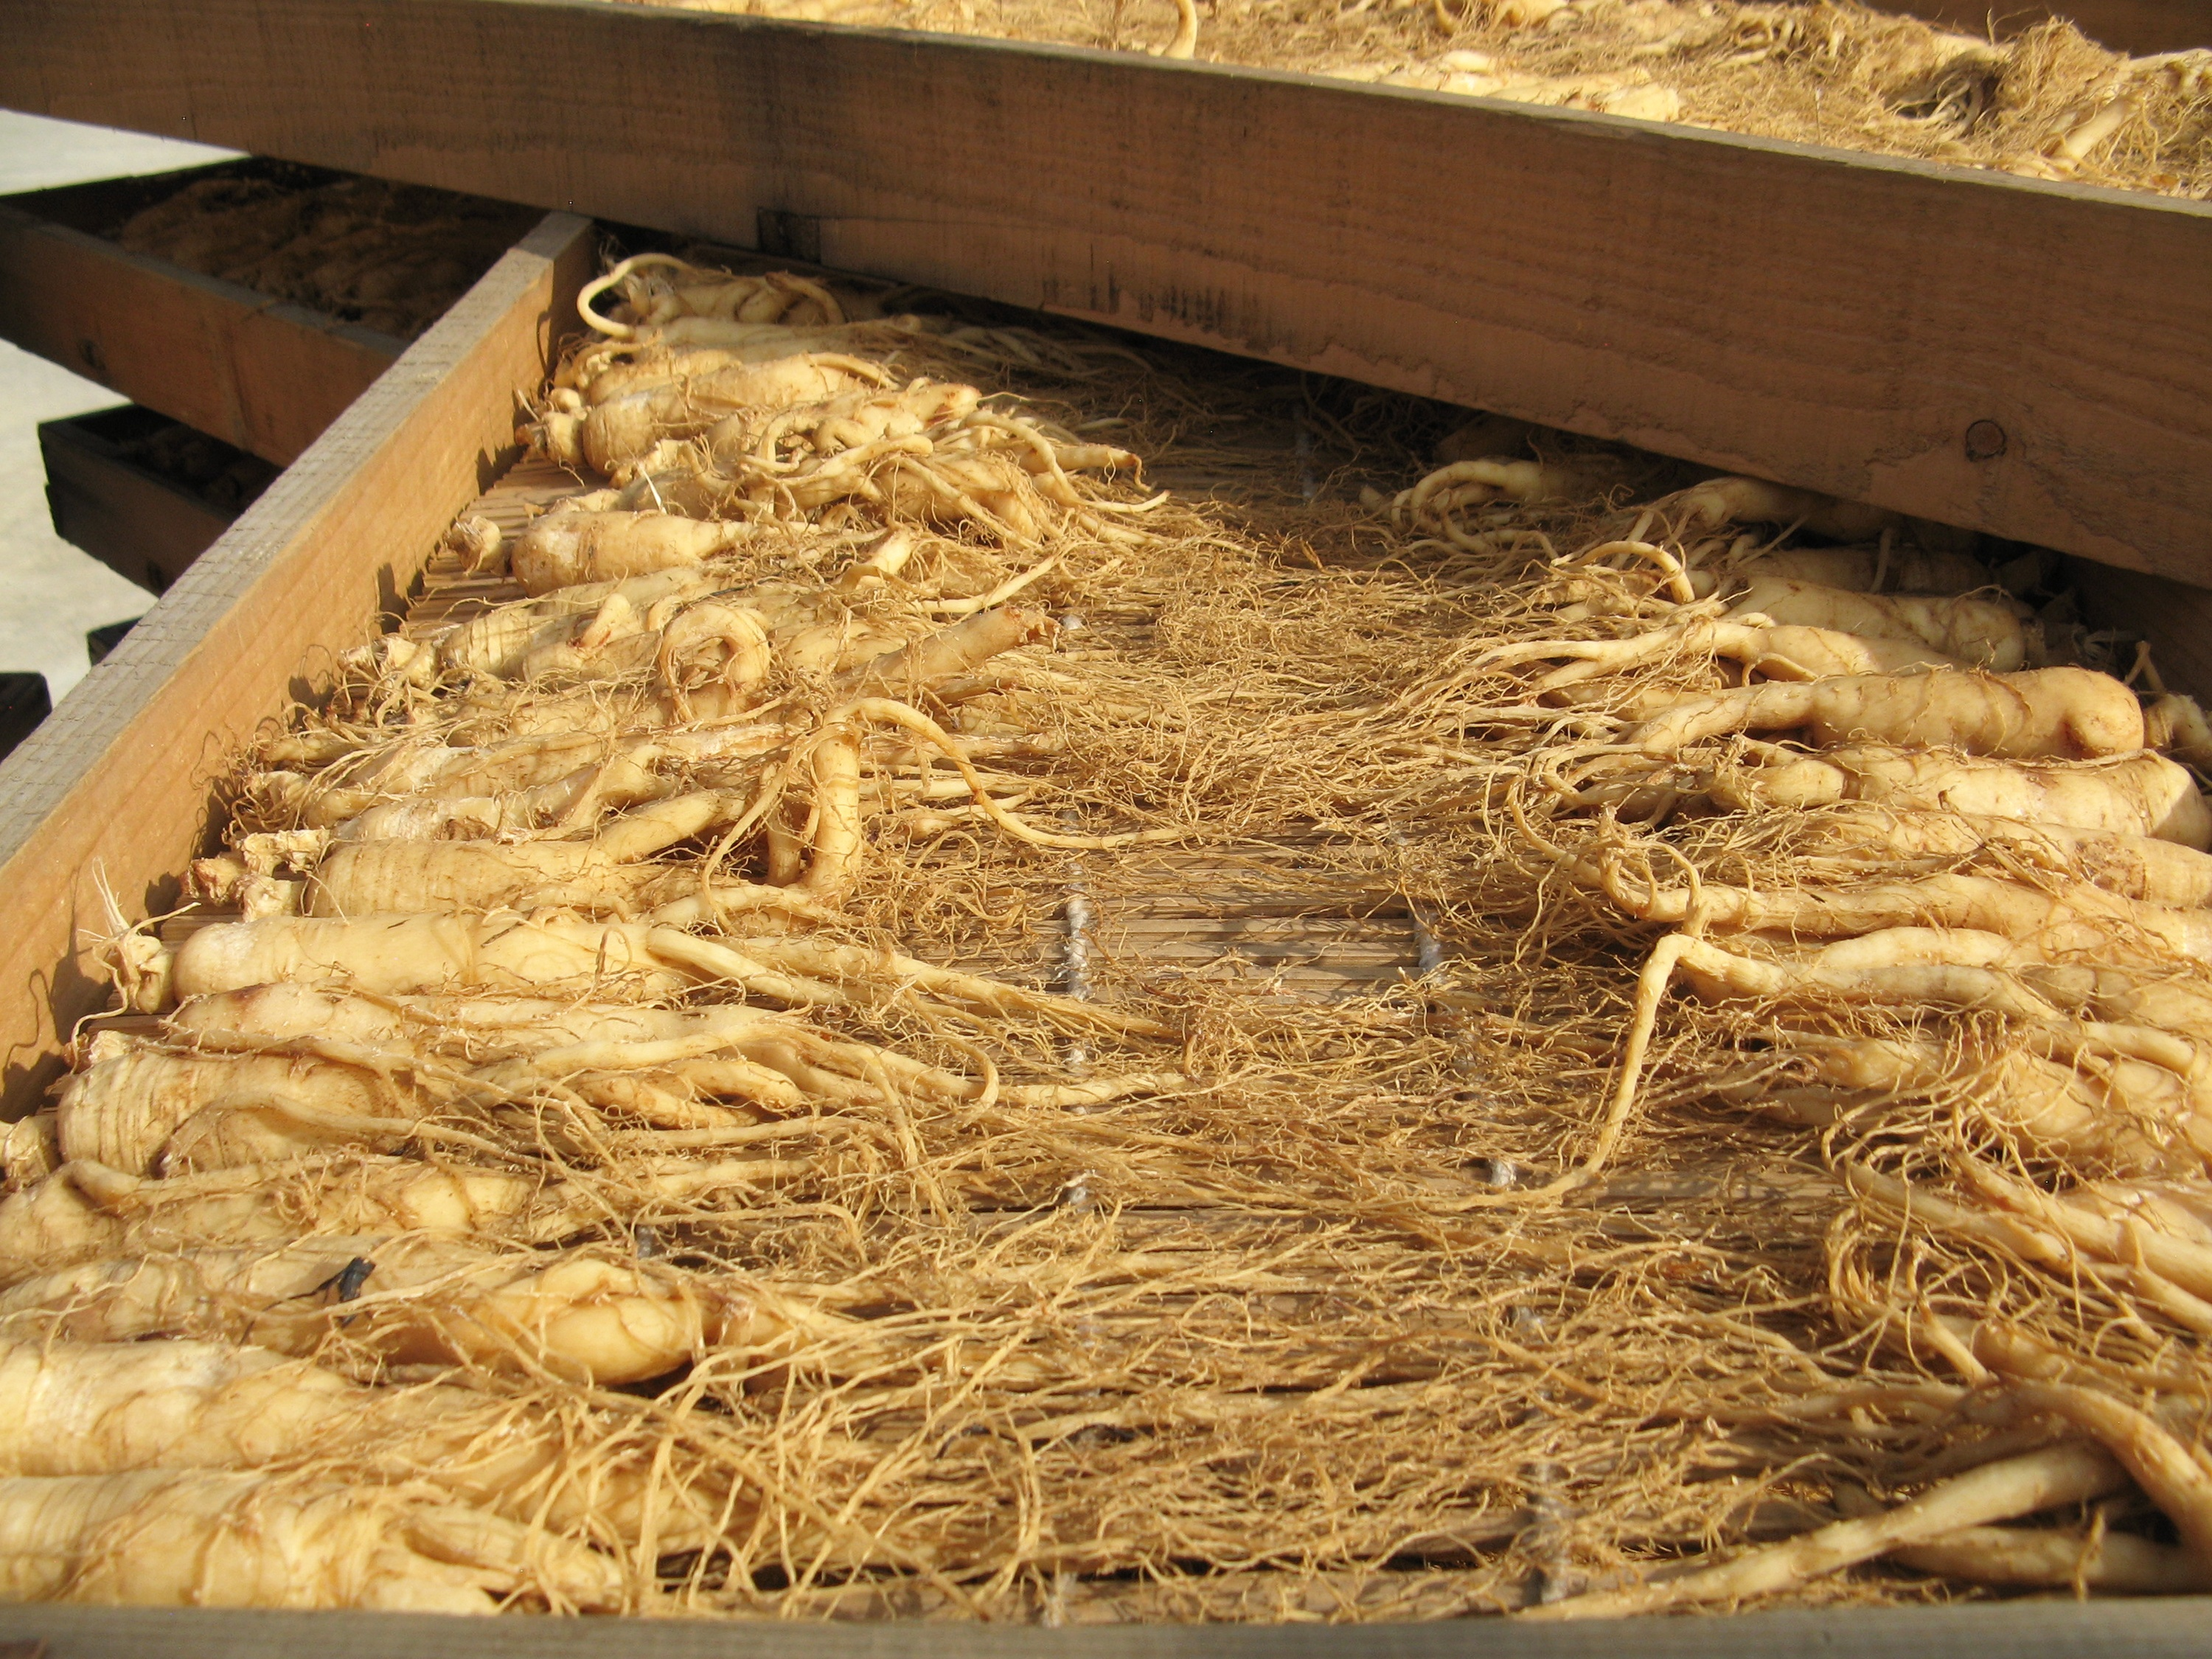 Ginseng roots laying out on wooden board in China for steaming into red ginseng